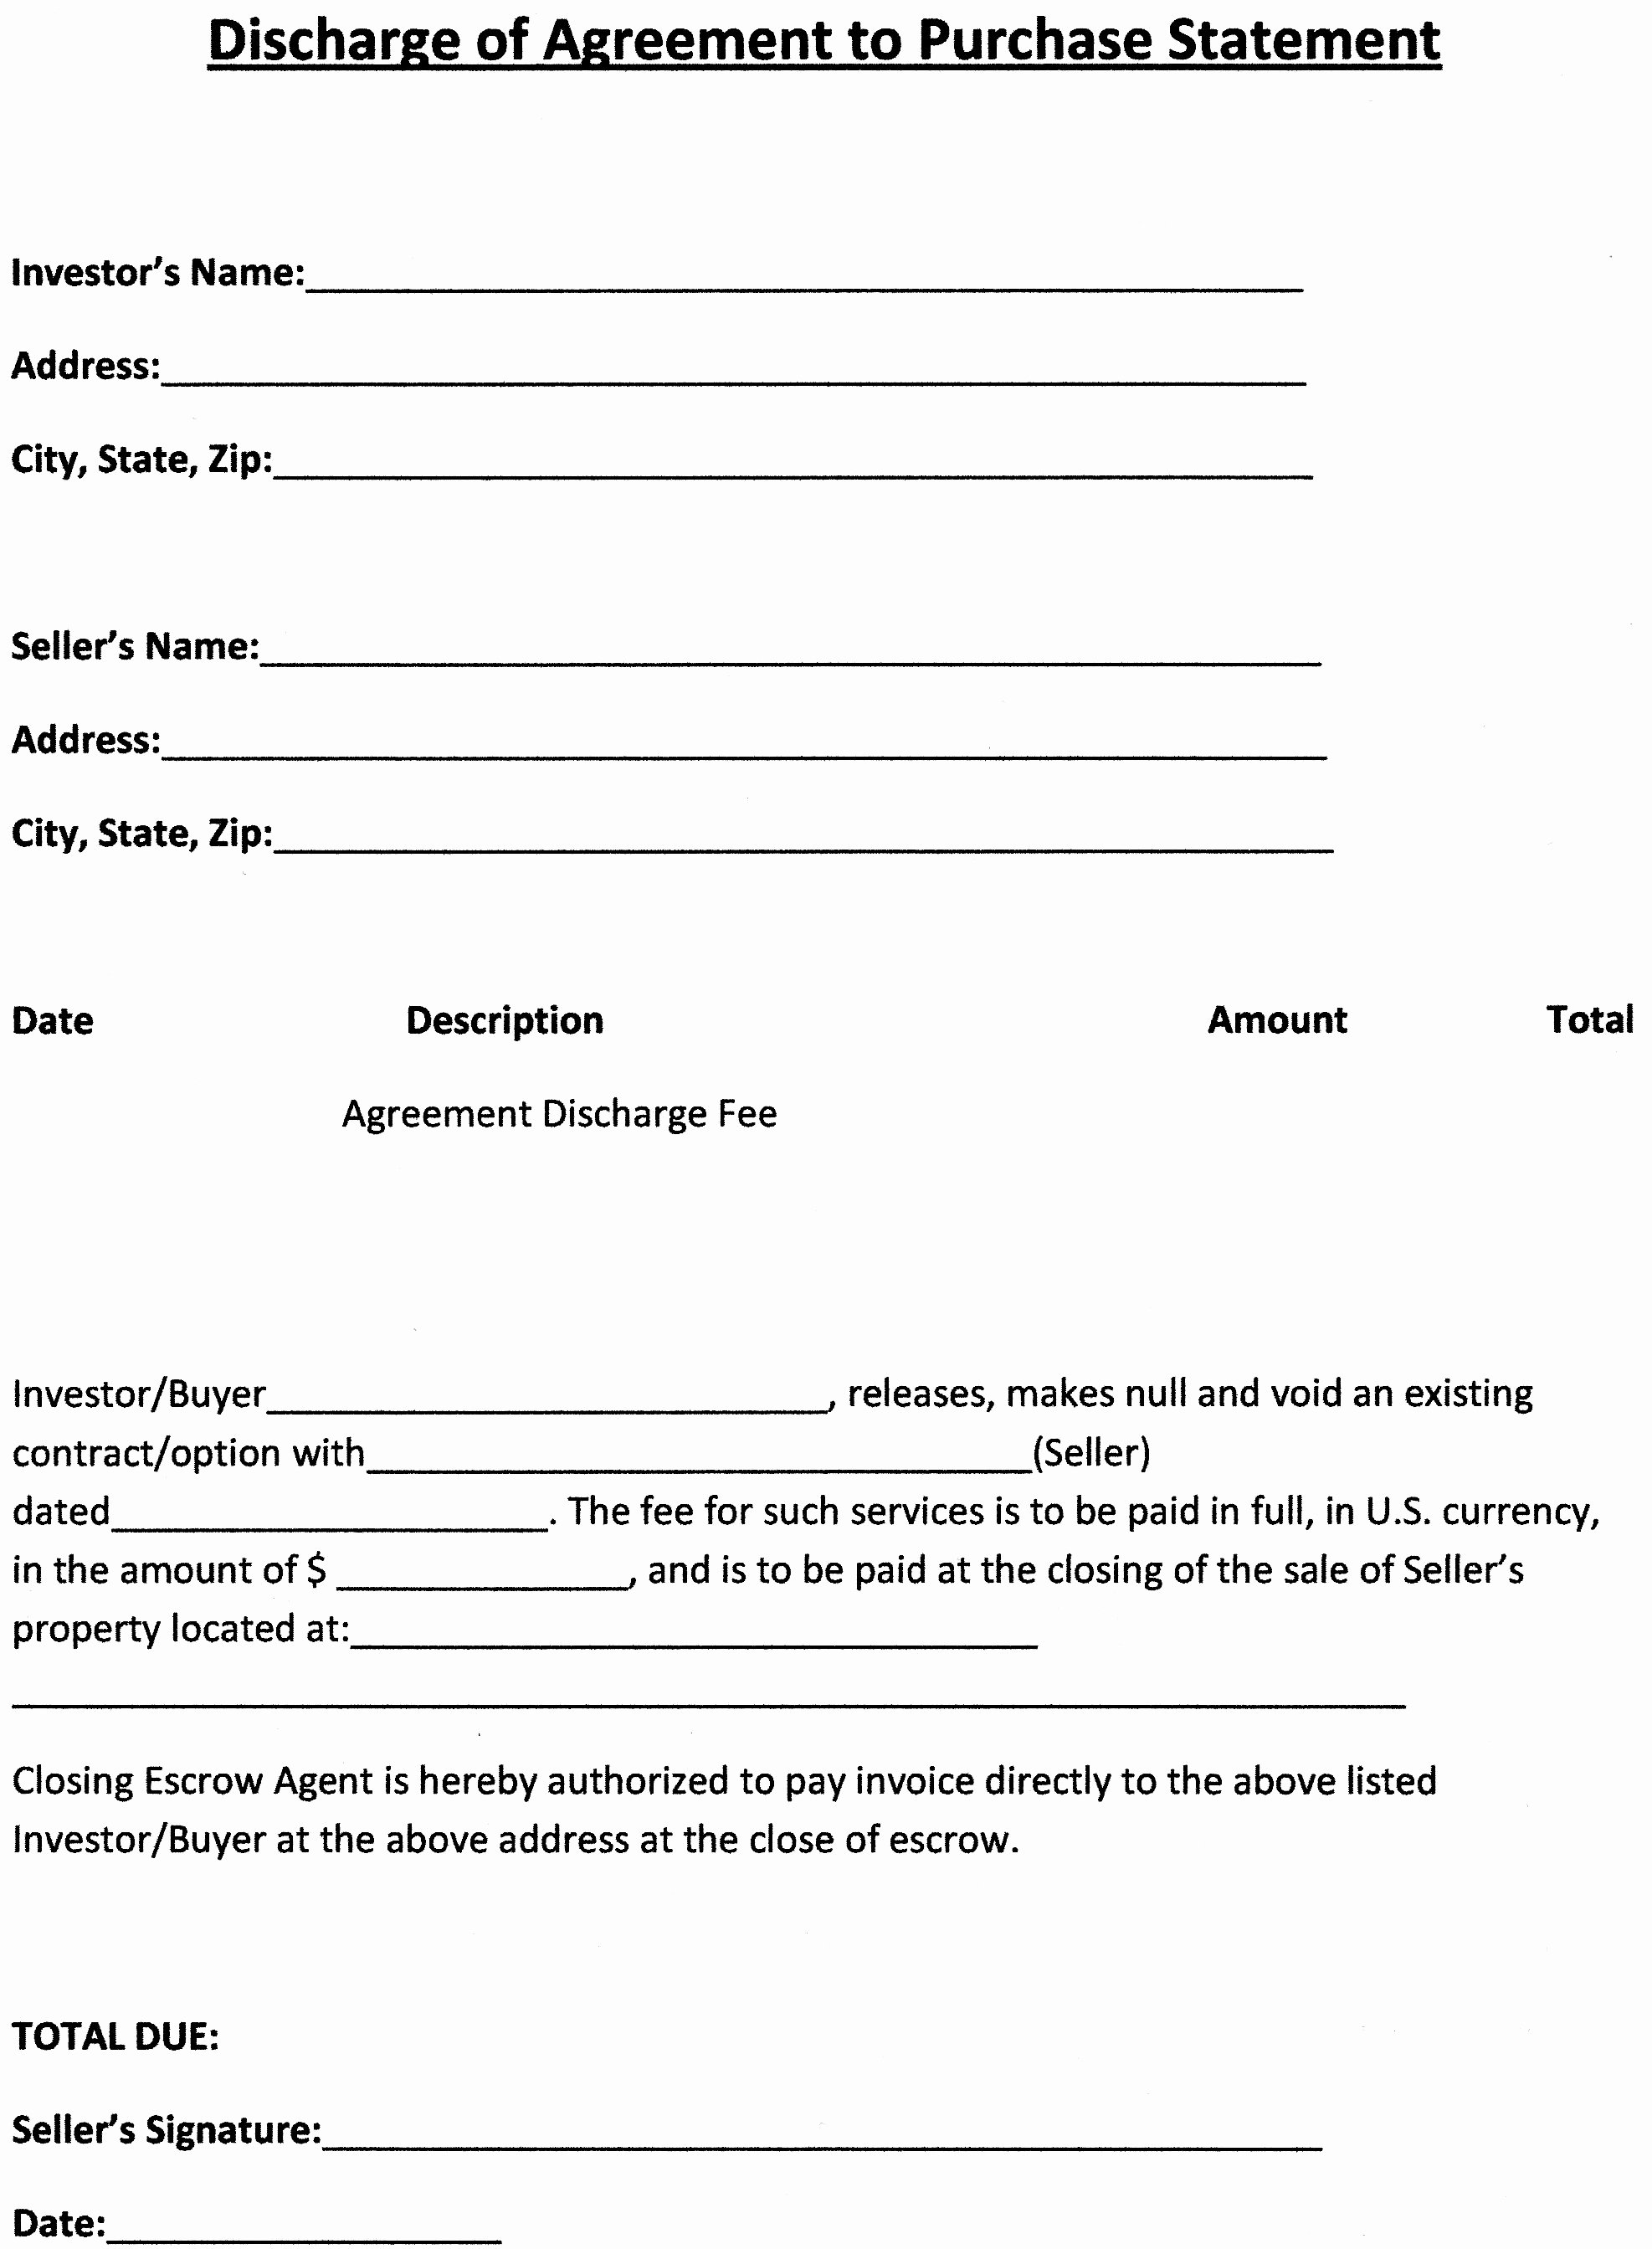 Home Buyout Agreement Template Beautiful Real Estate Purchase Agreement Template Free Printable